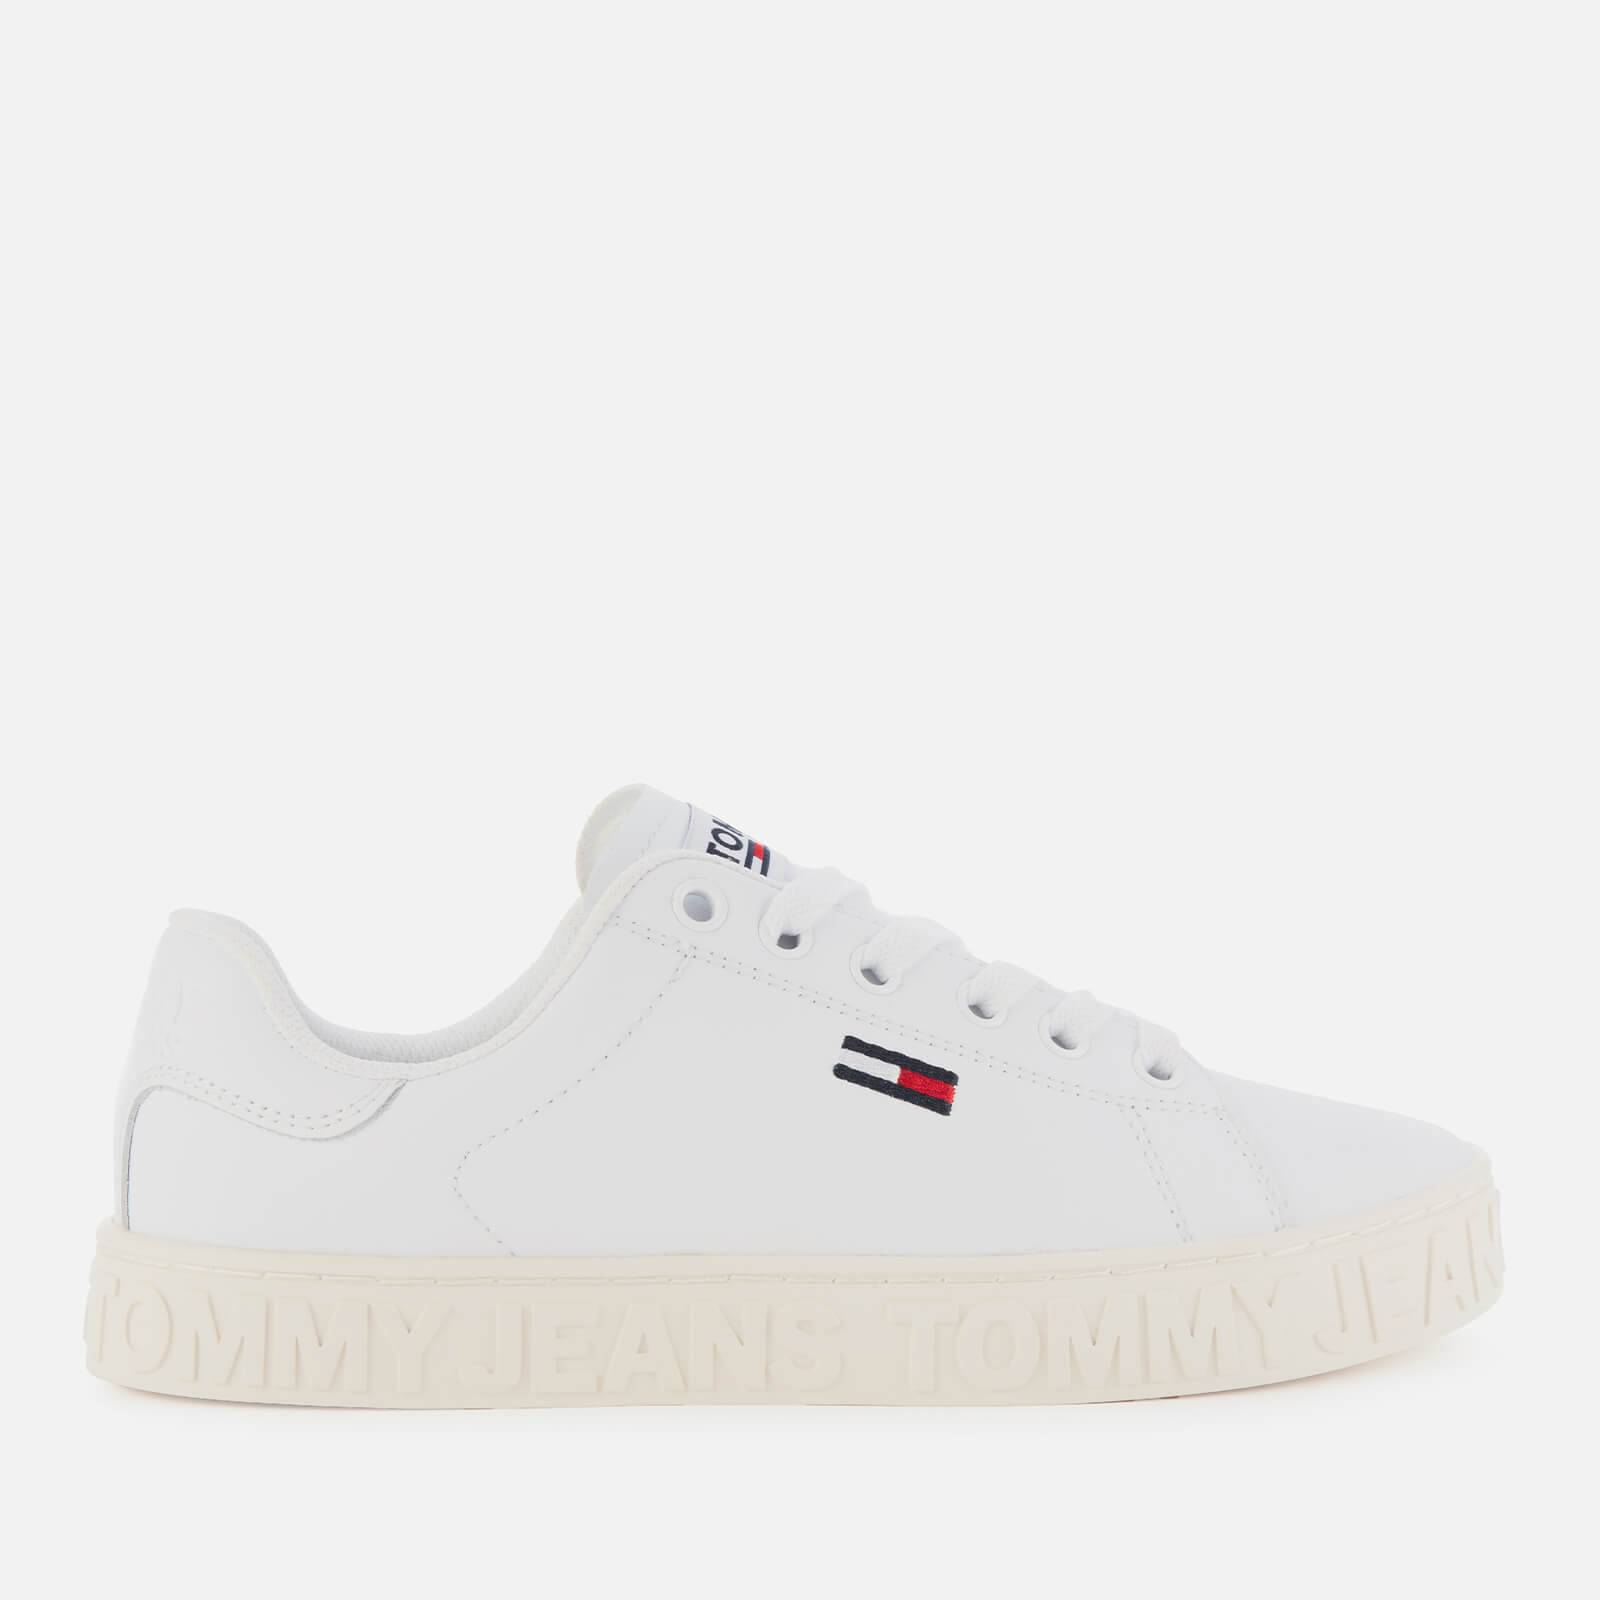 Tommy Jeans Women's Cool Trainers - White - EU 36/UK 3.5